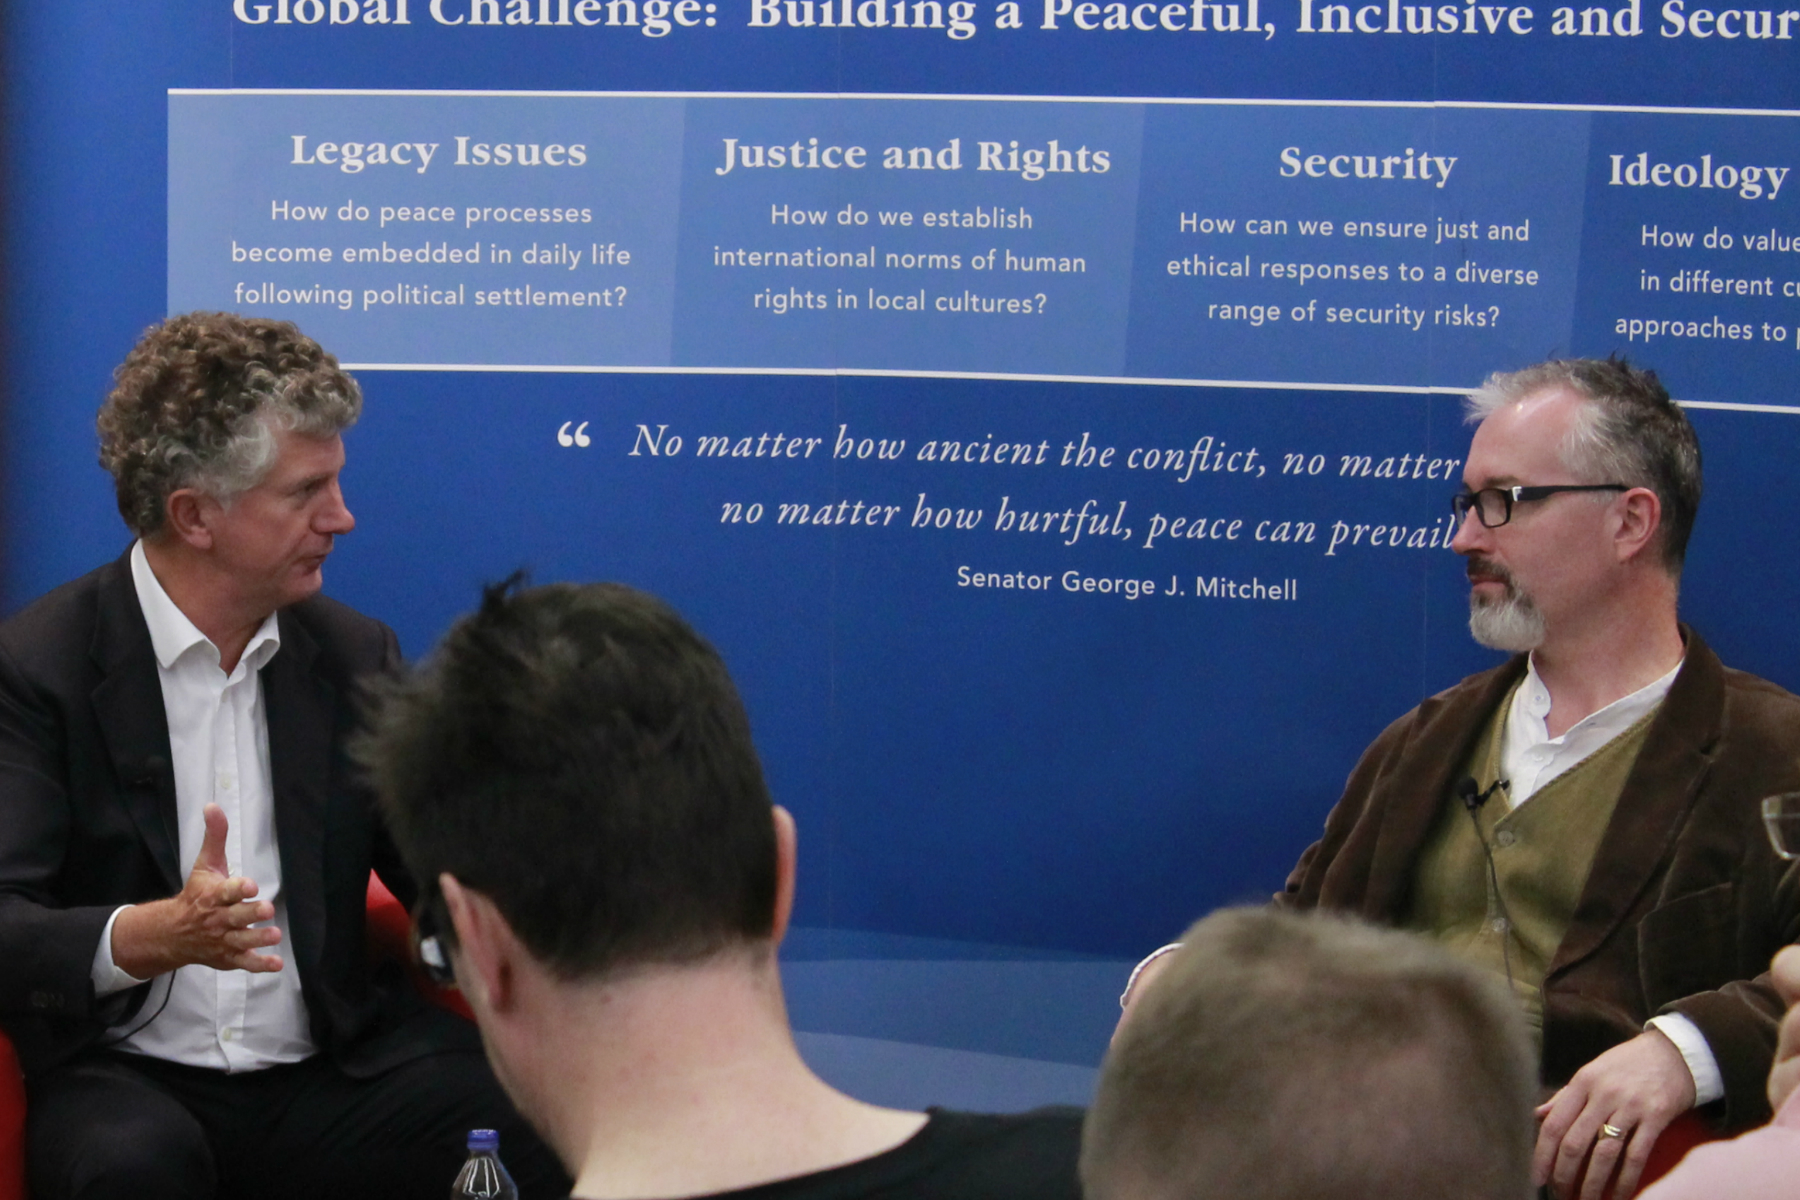 Jonathan Powell on Ending Conflicts – Insights on Leadership